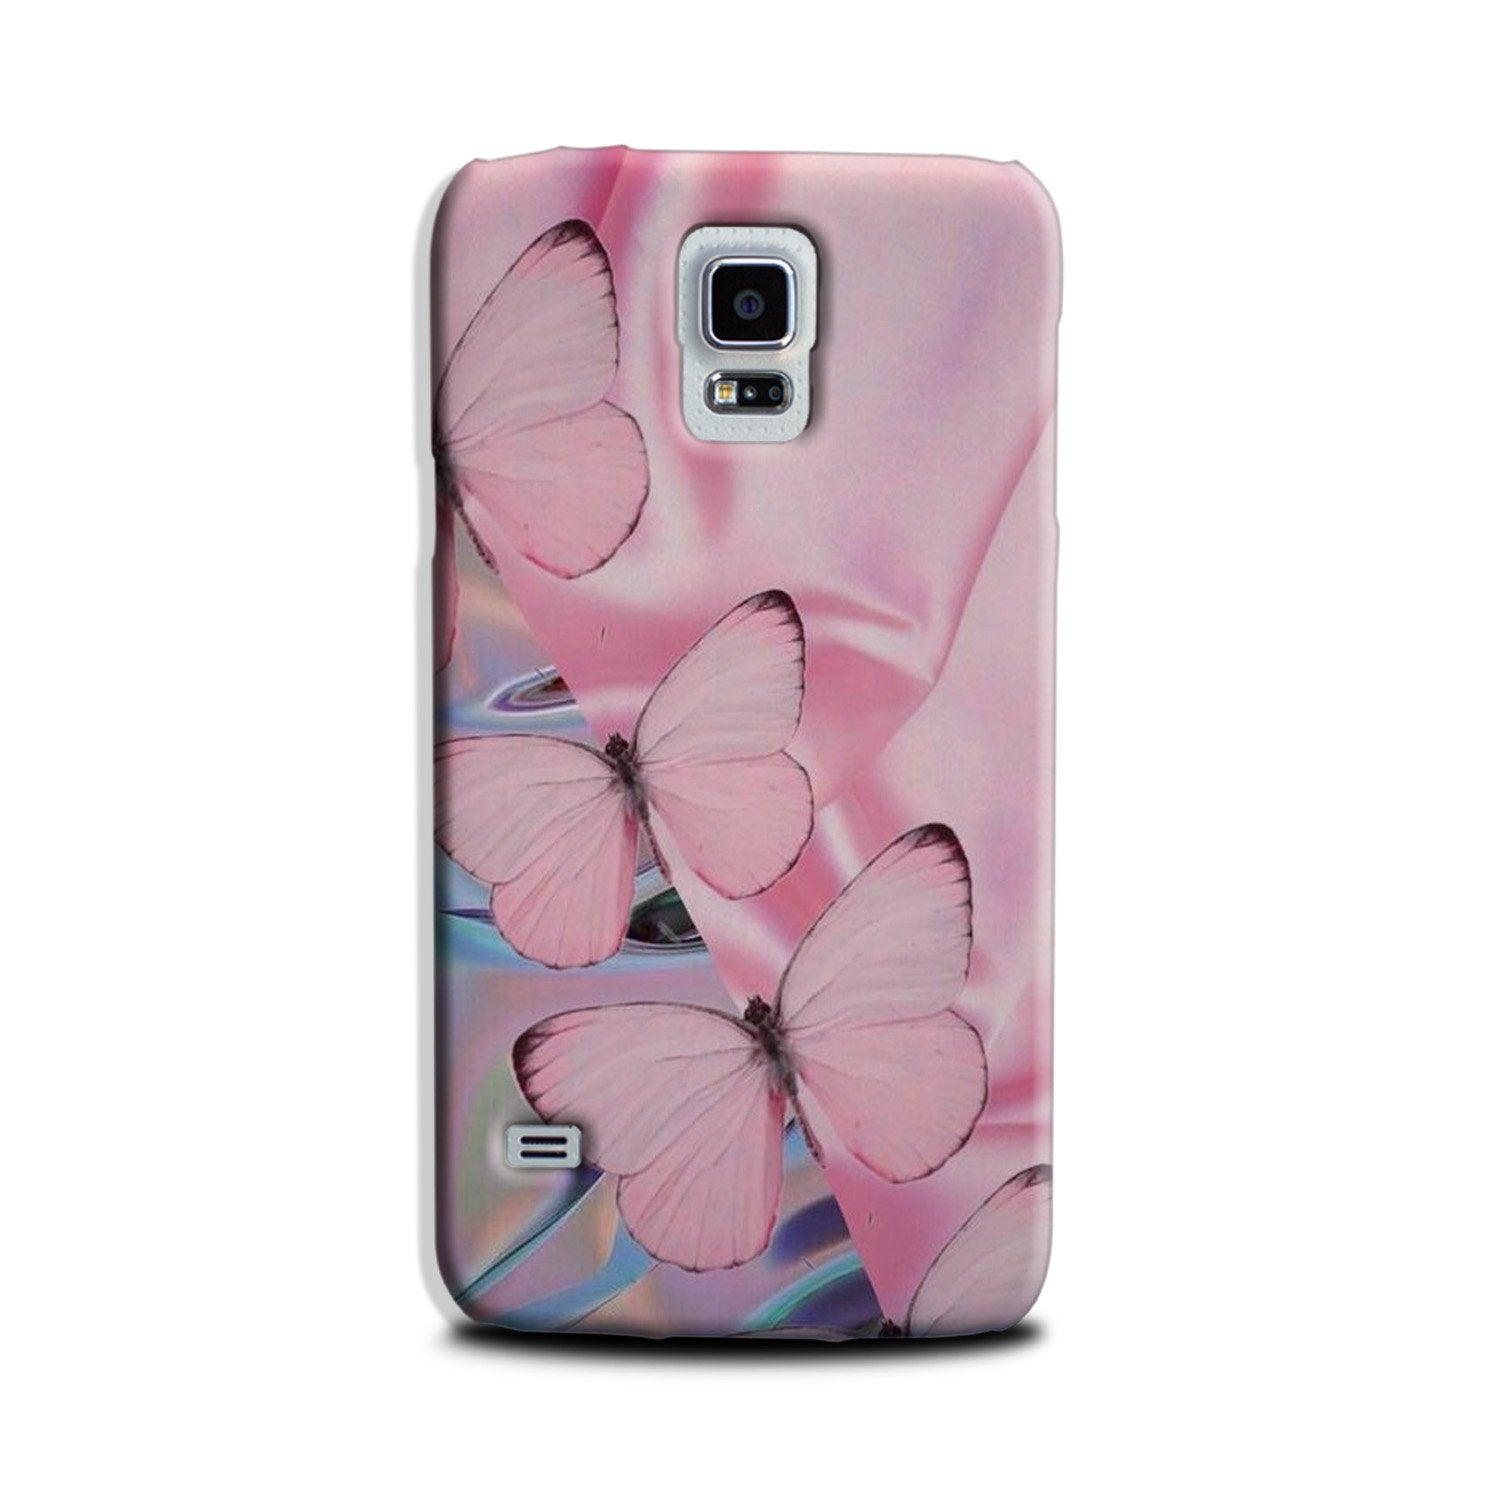 Butterflies Case for Galaxy S5